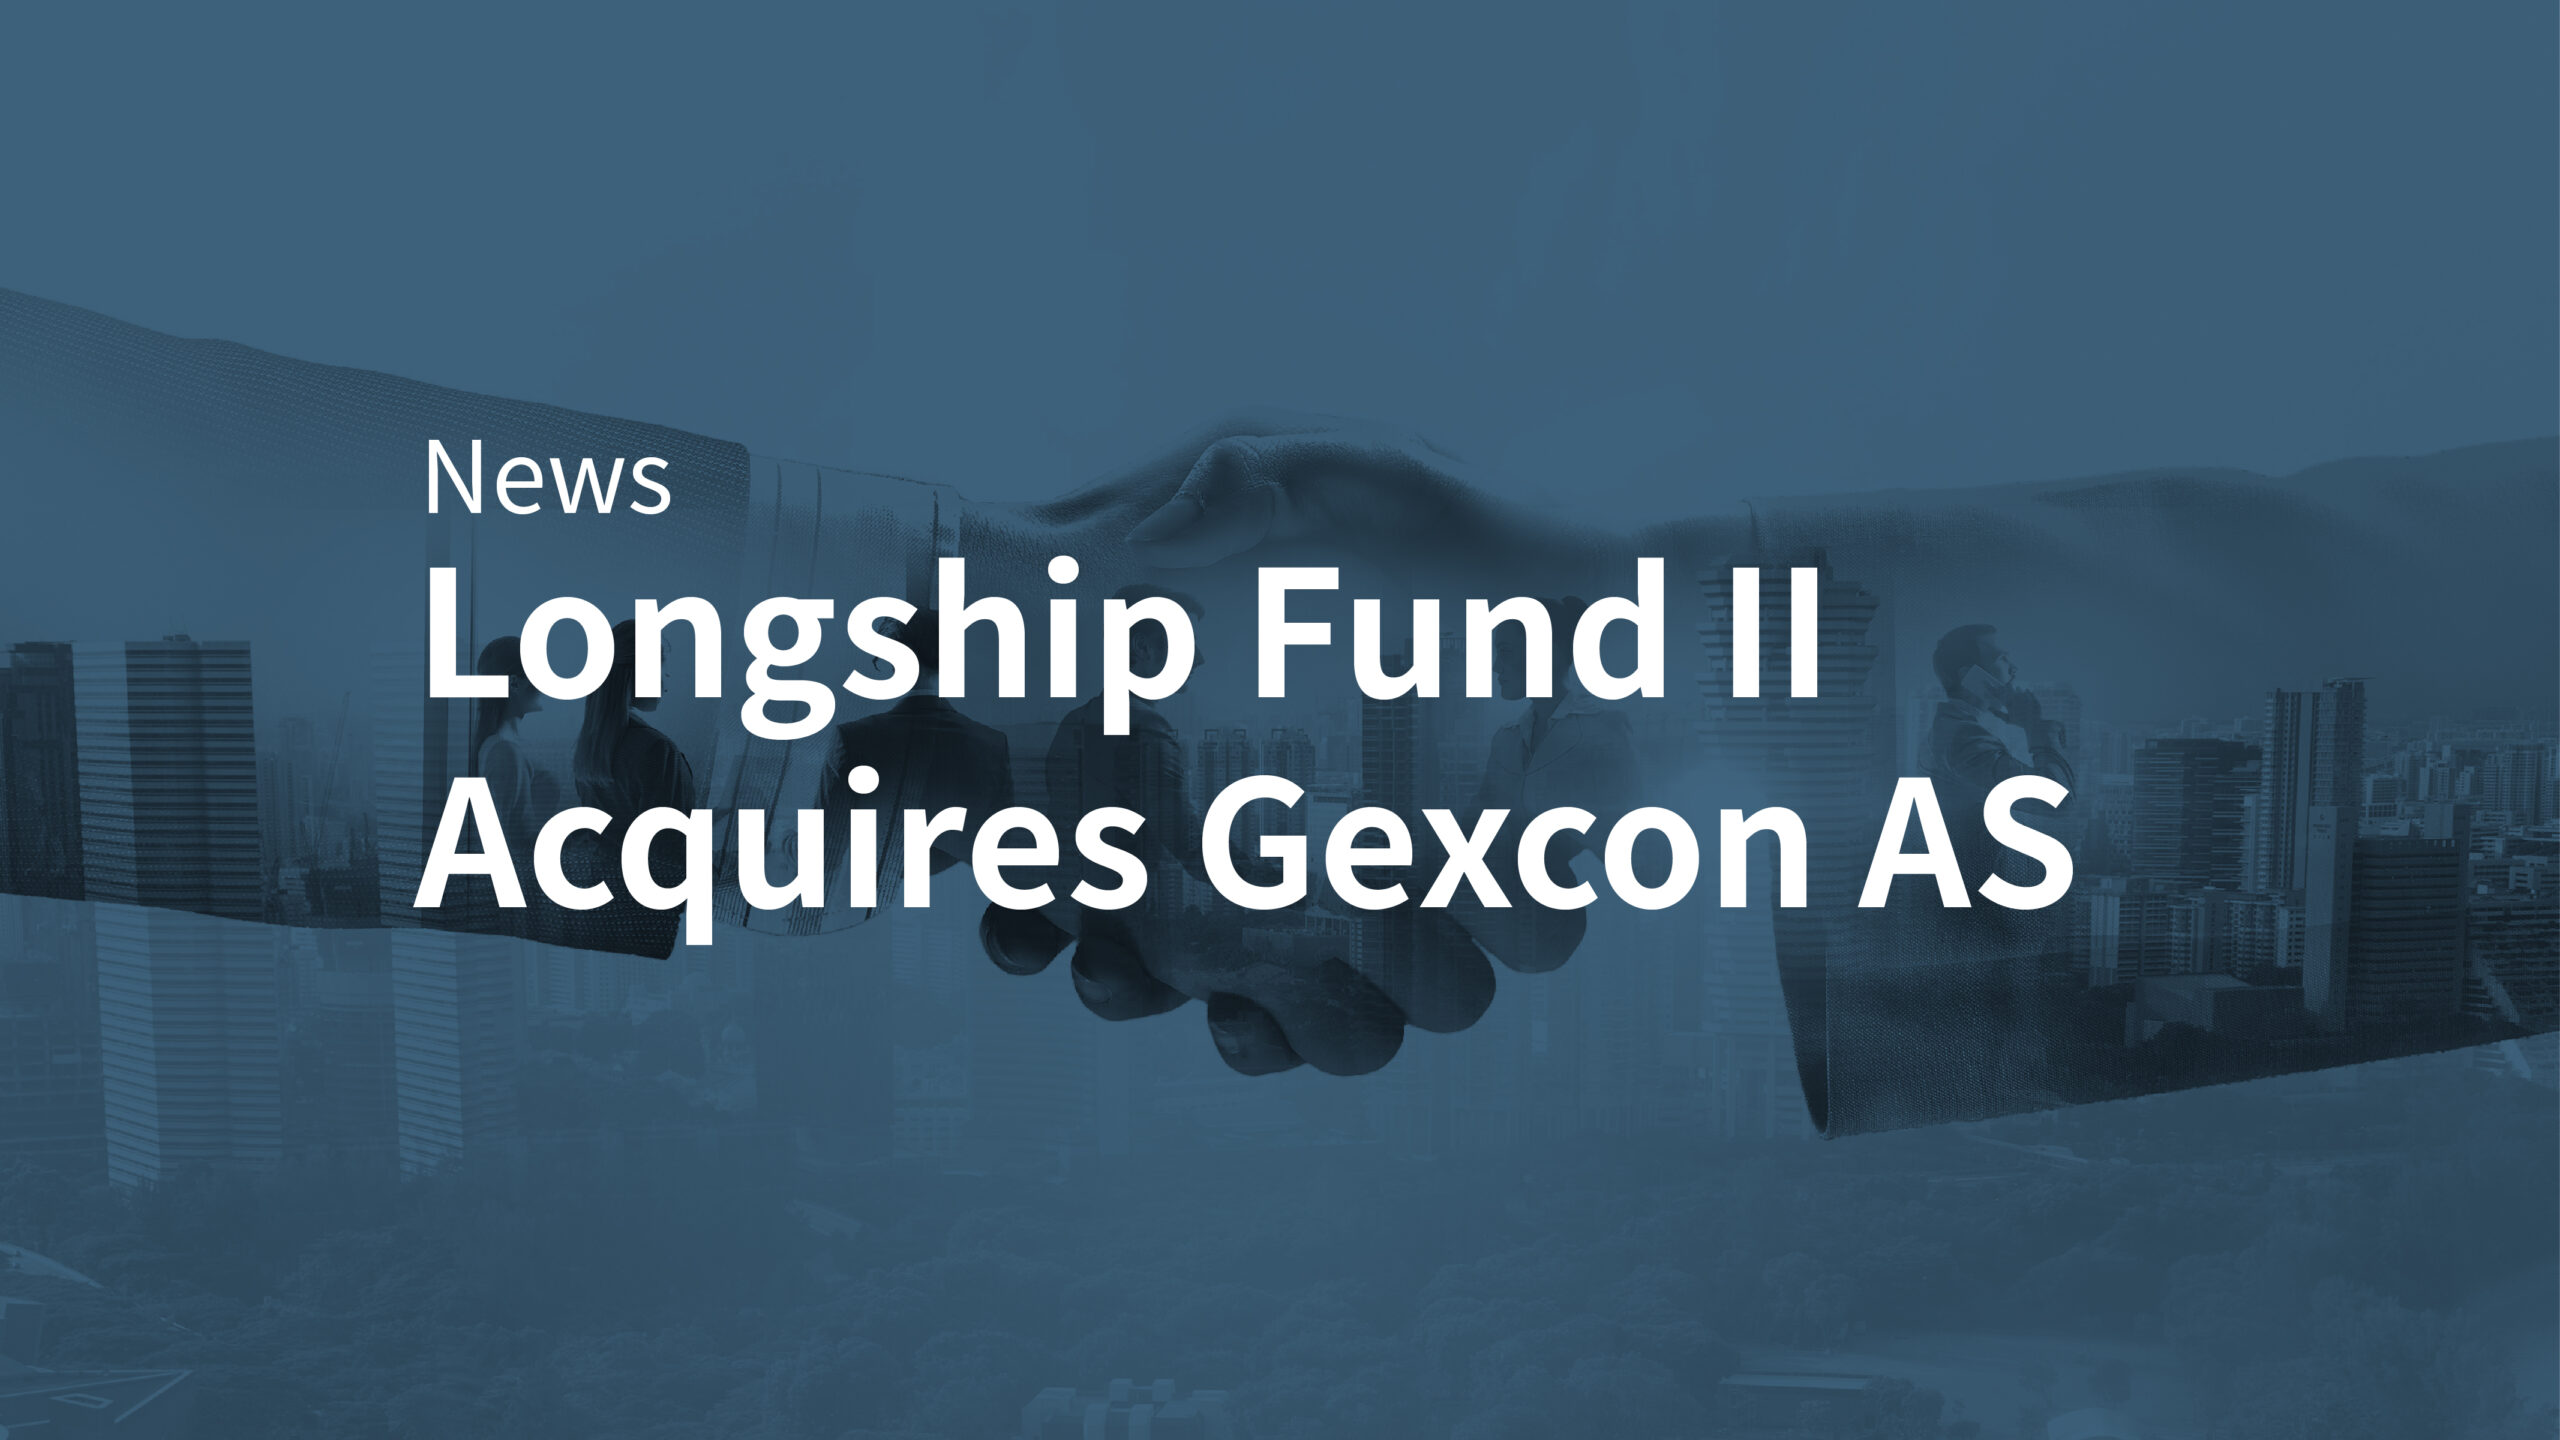 Longship Fund II Acquires Gexcon AS